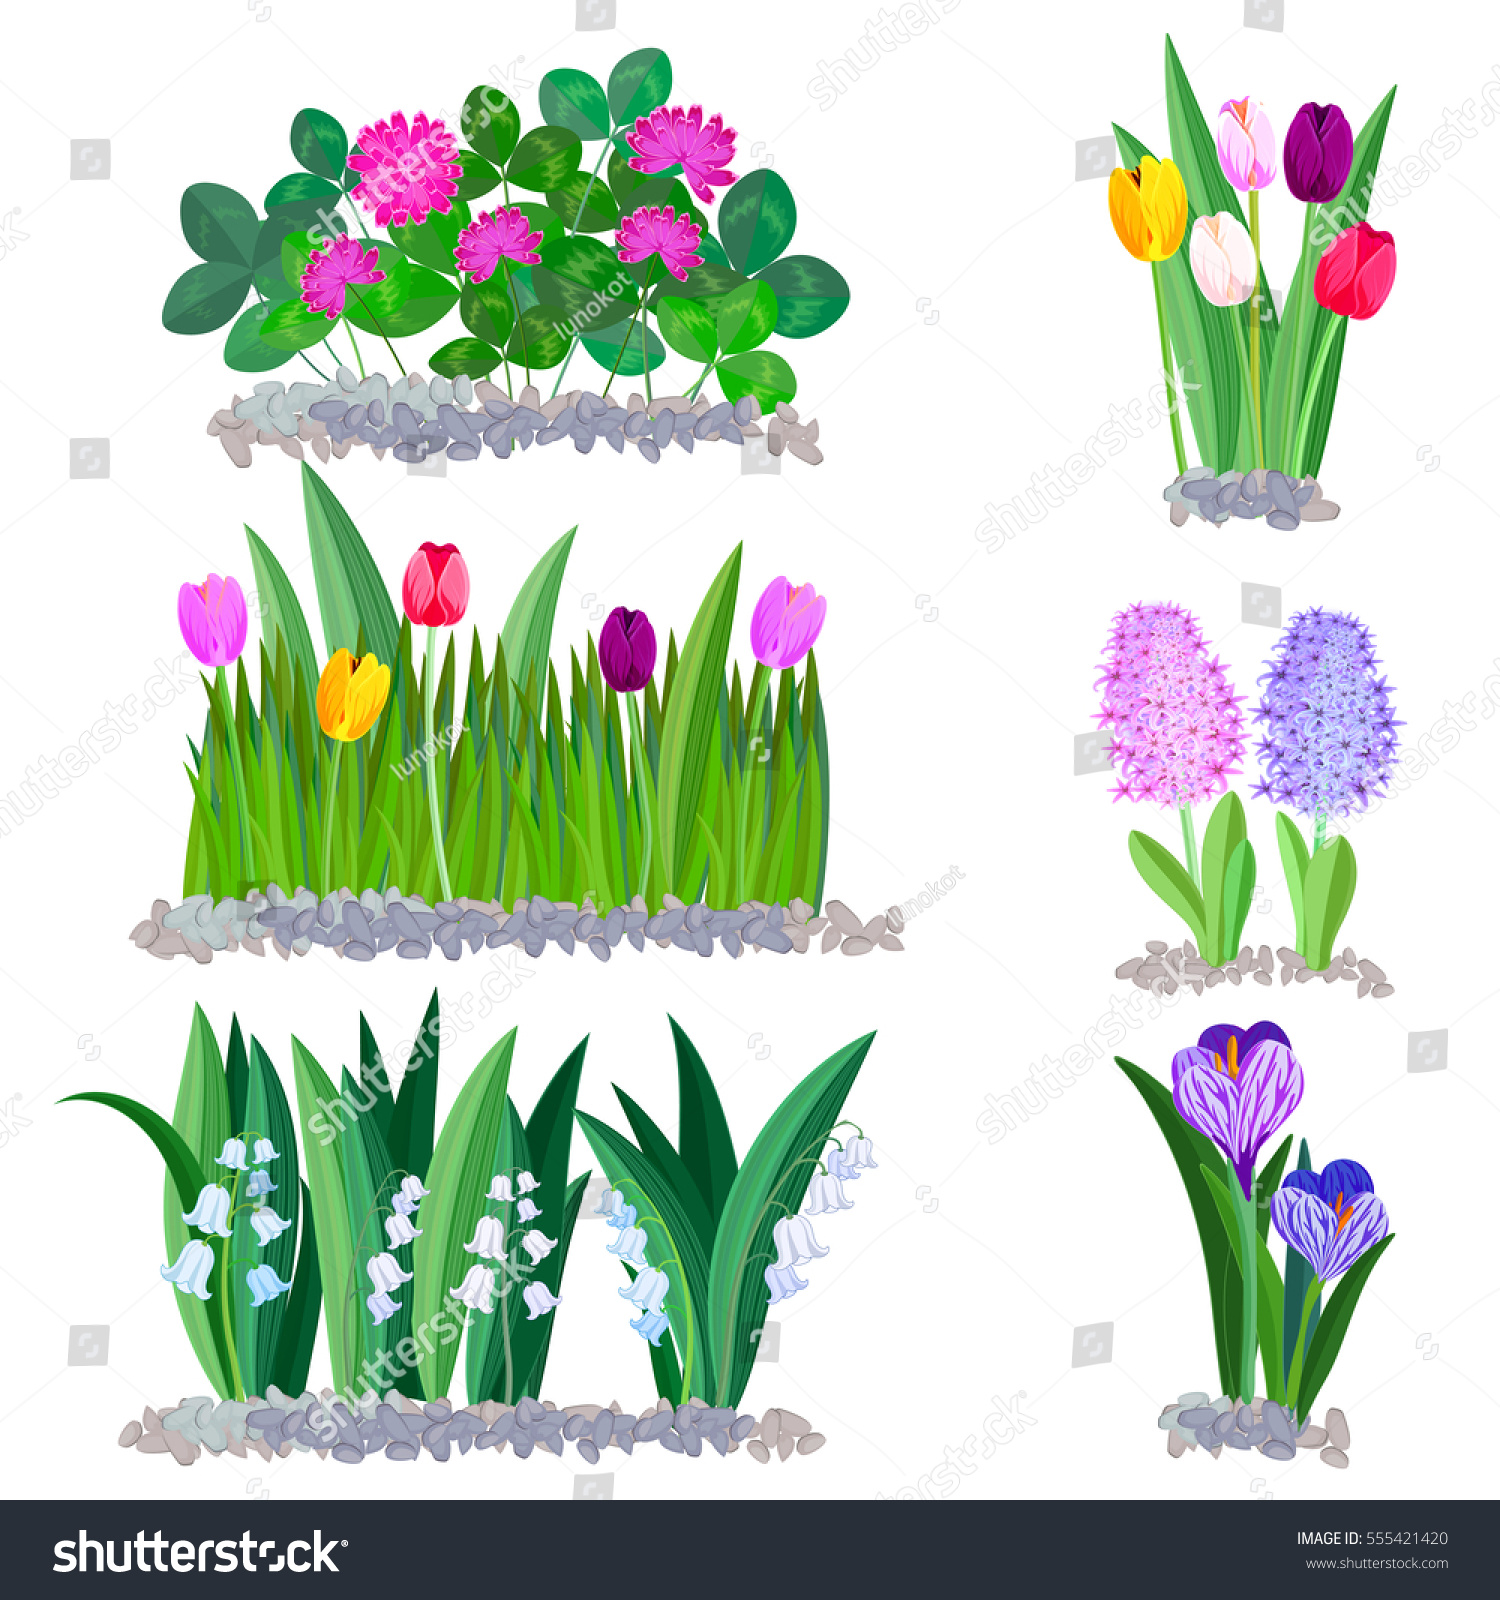 Spring Flowers Growing Garden Icons Borders Stock Vector Royalty